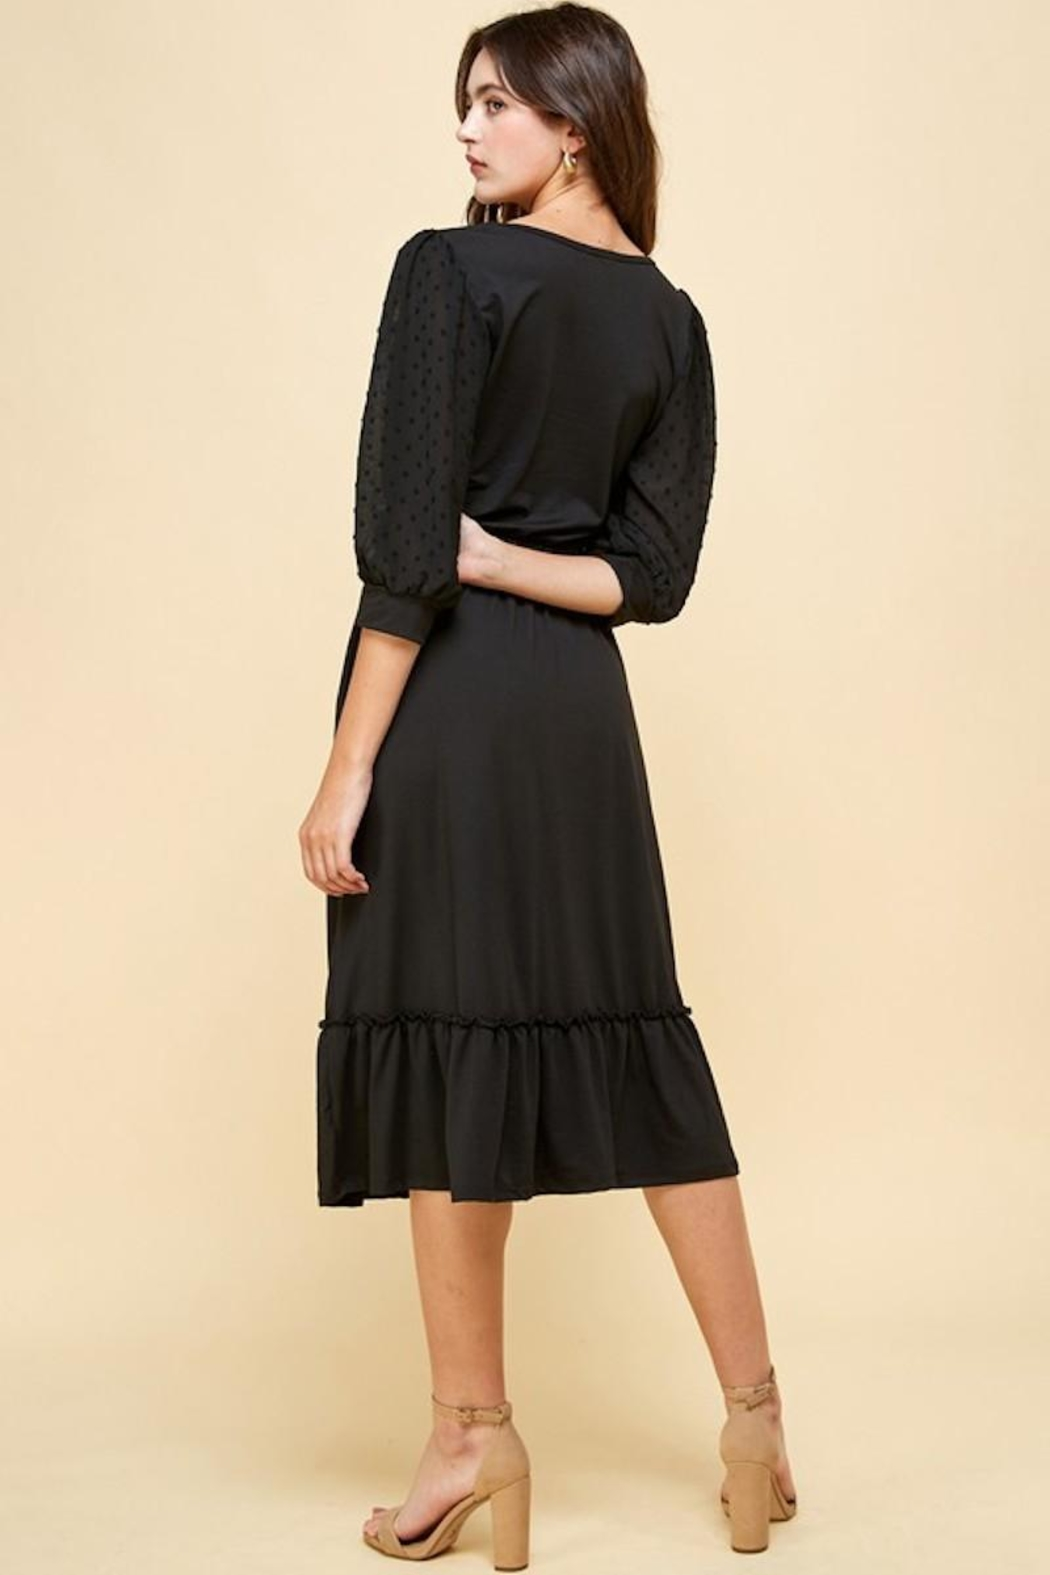 Les Amis Darling Black Dress - Side Cropped Image